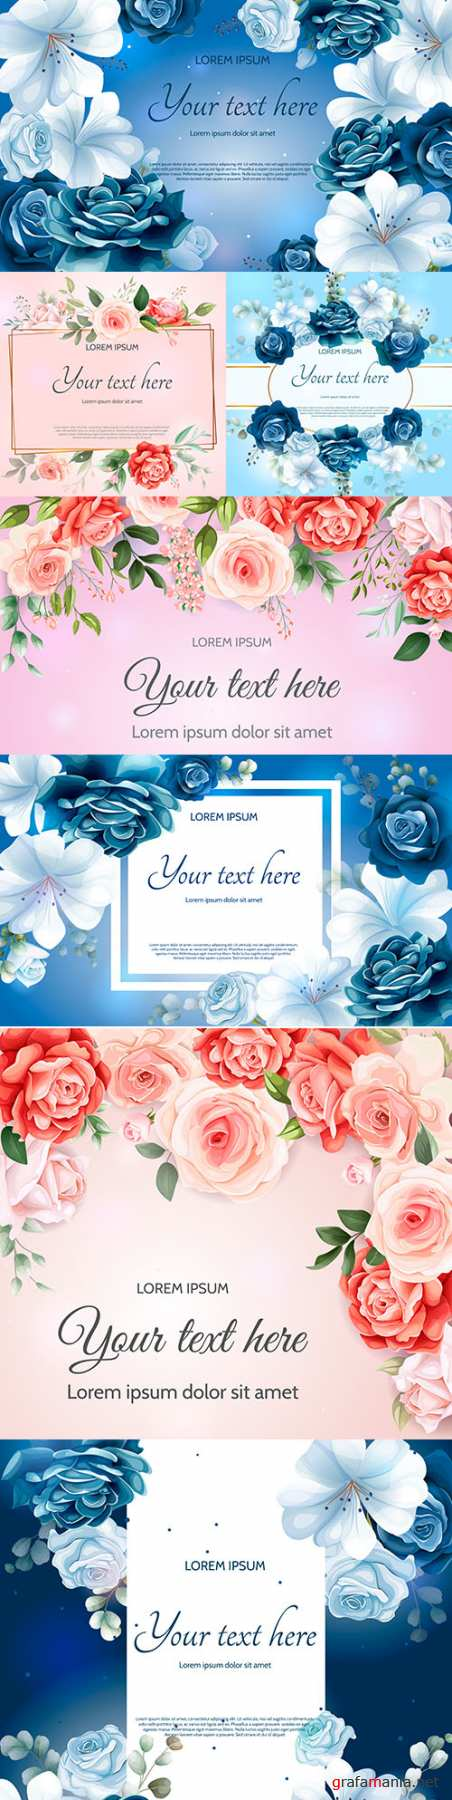 Beautiful spring floral paper template for design